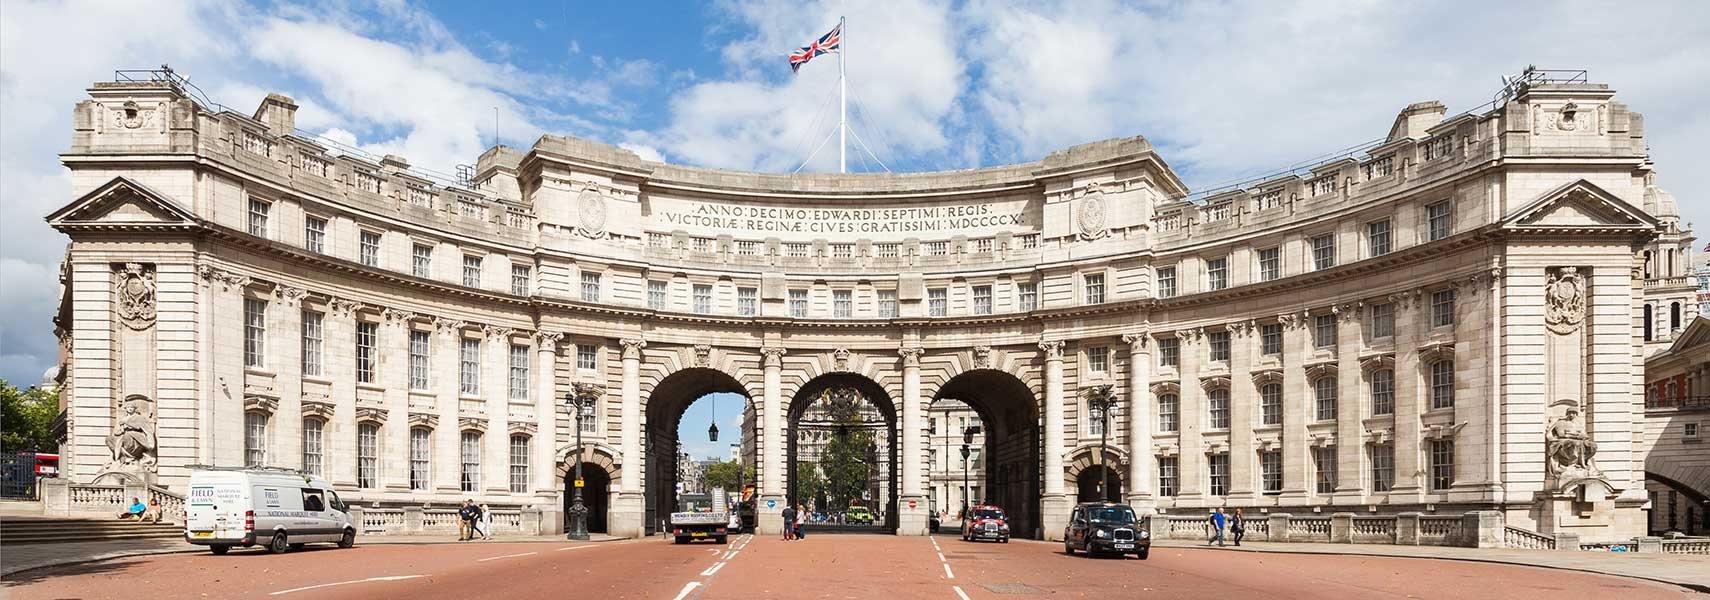 Admiralty Arch with The Mall, London, England